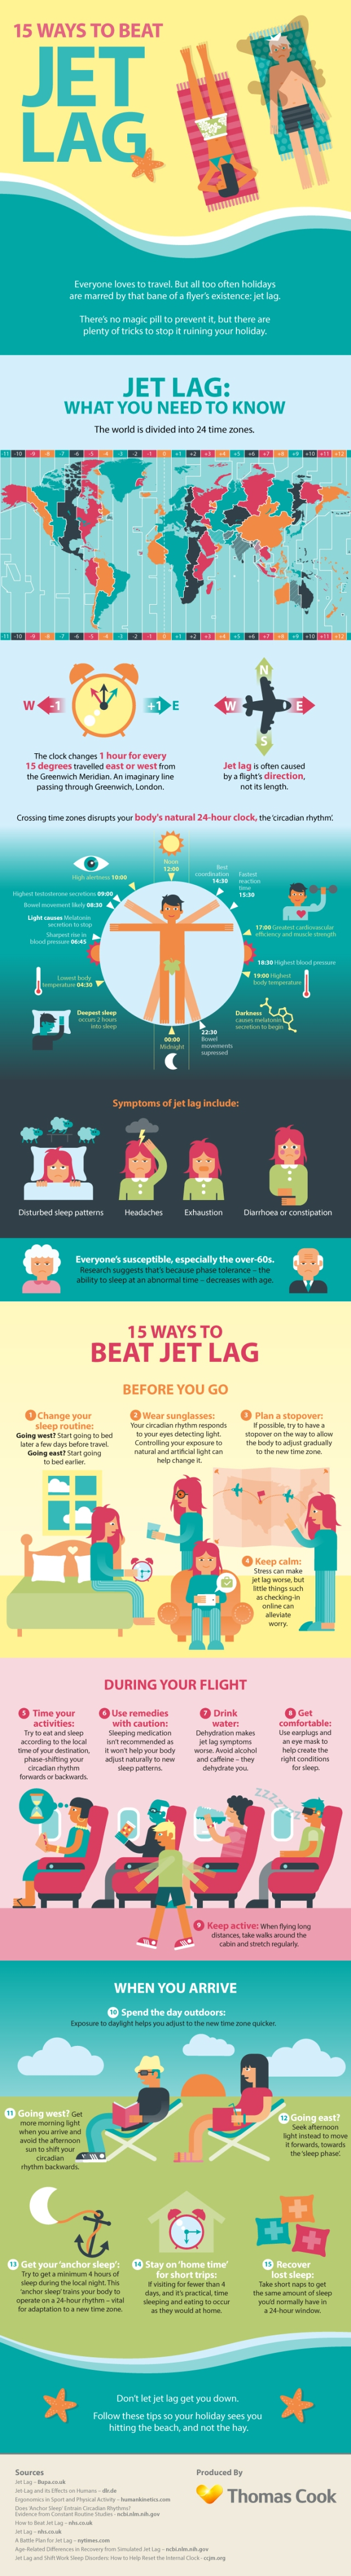 15-ways-to-beat-jet-lag_53c66a07a345c